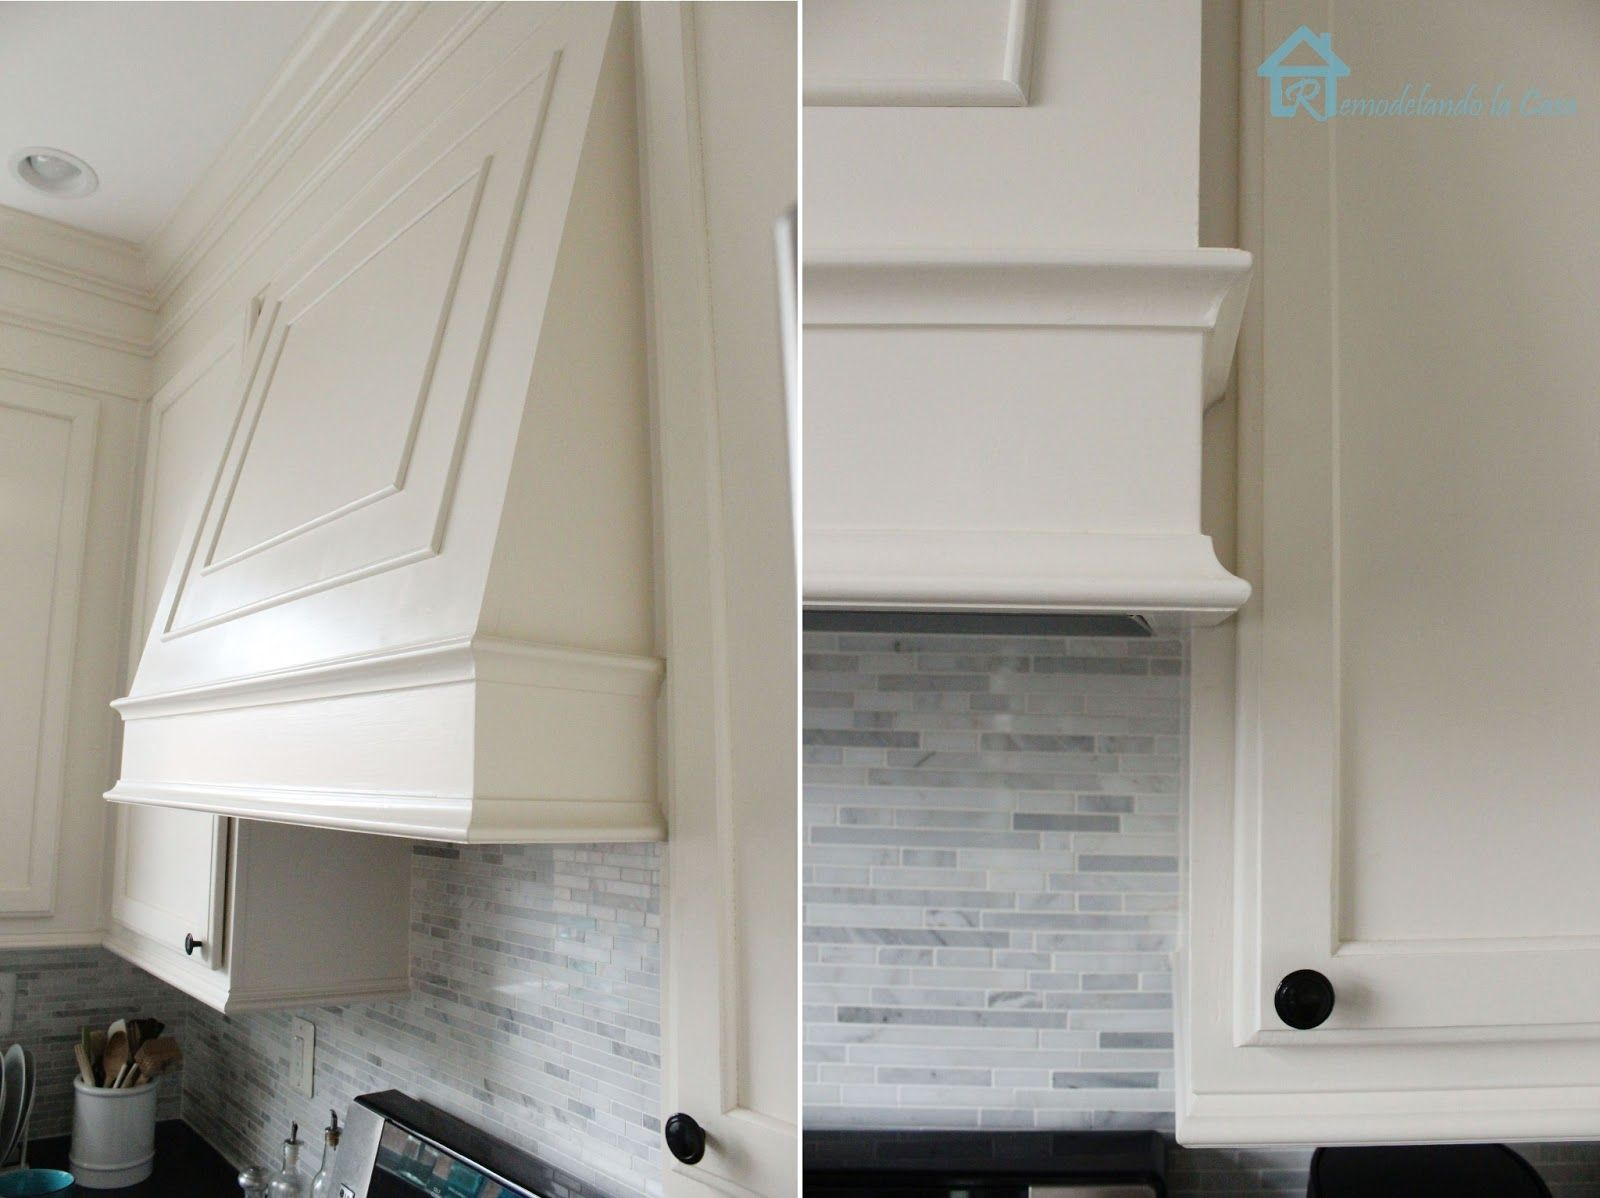 How to build your own range hood with Broan PM390 insert